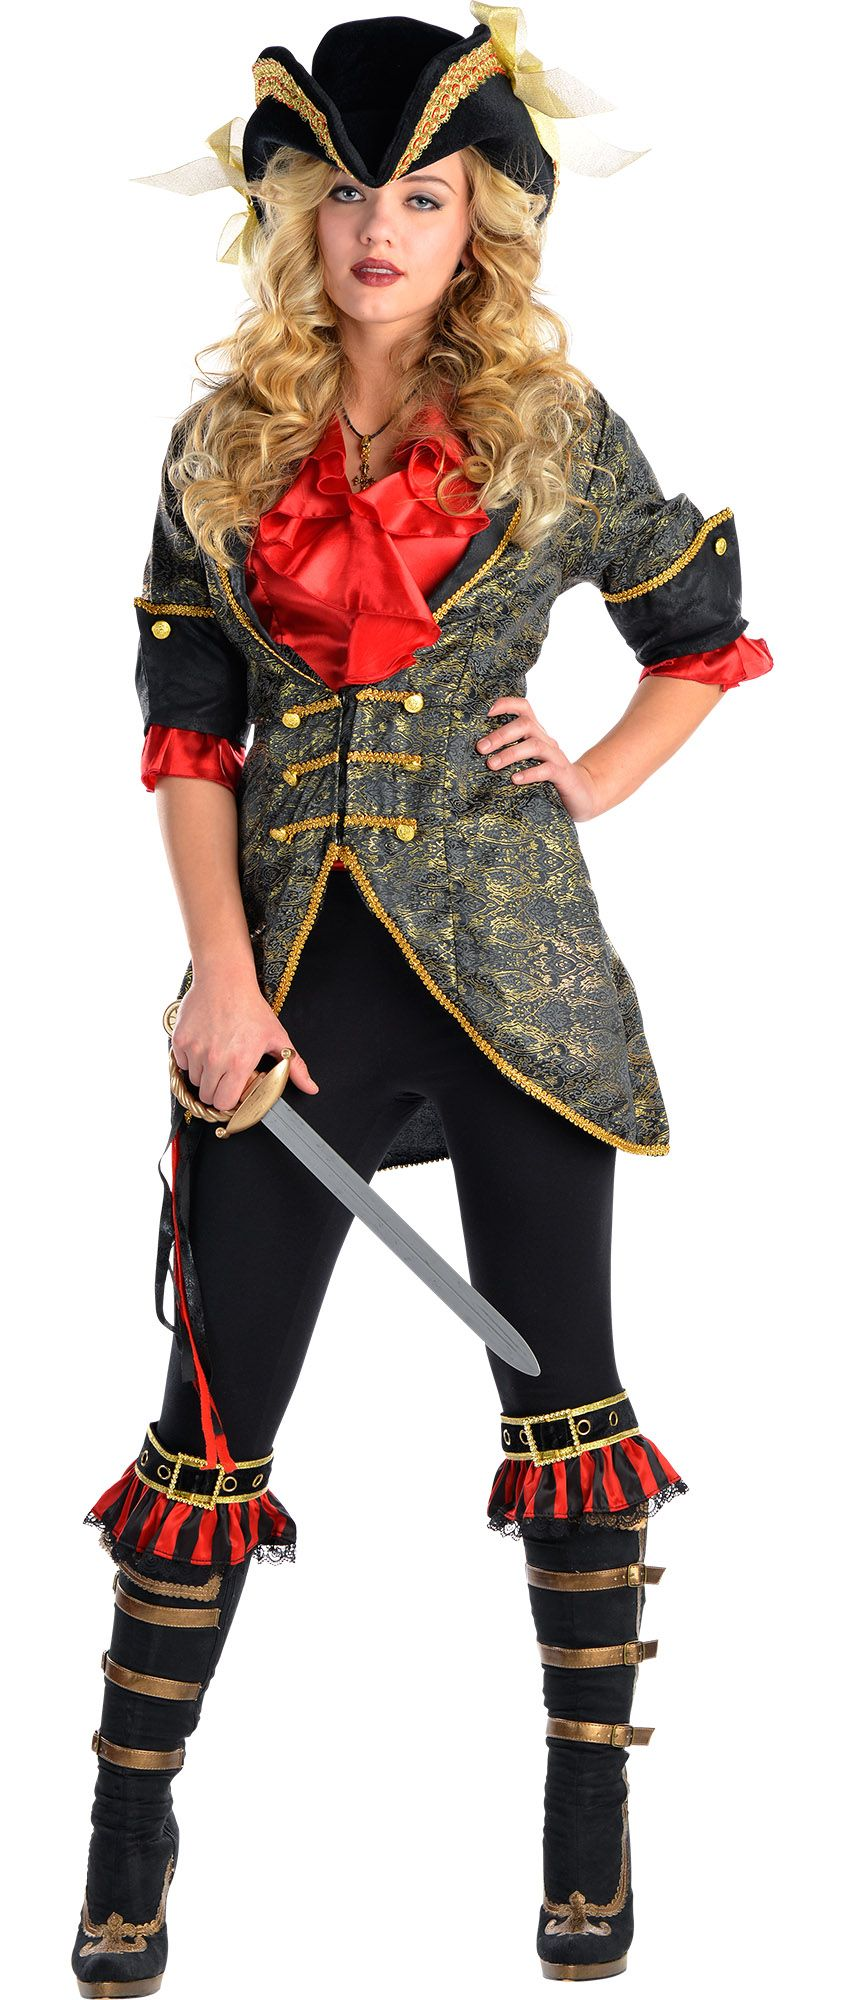 Create Your Look - Female Sassy Pirate